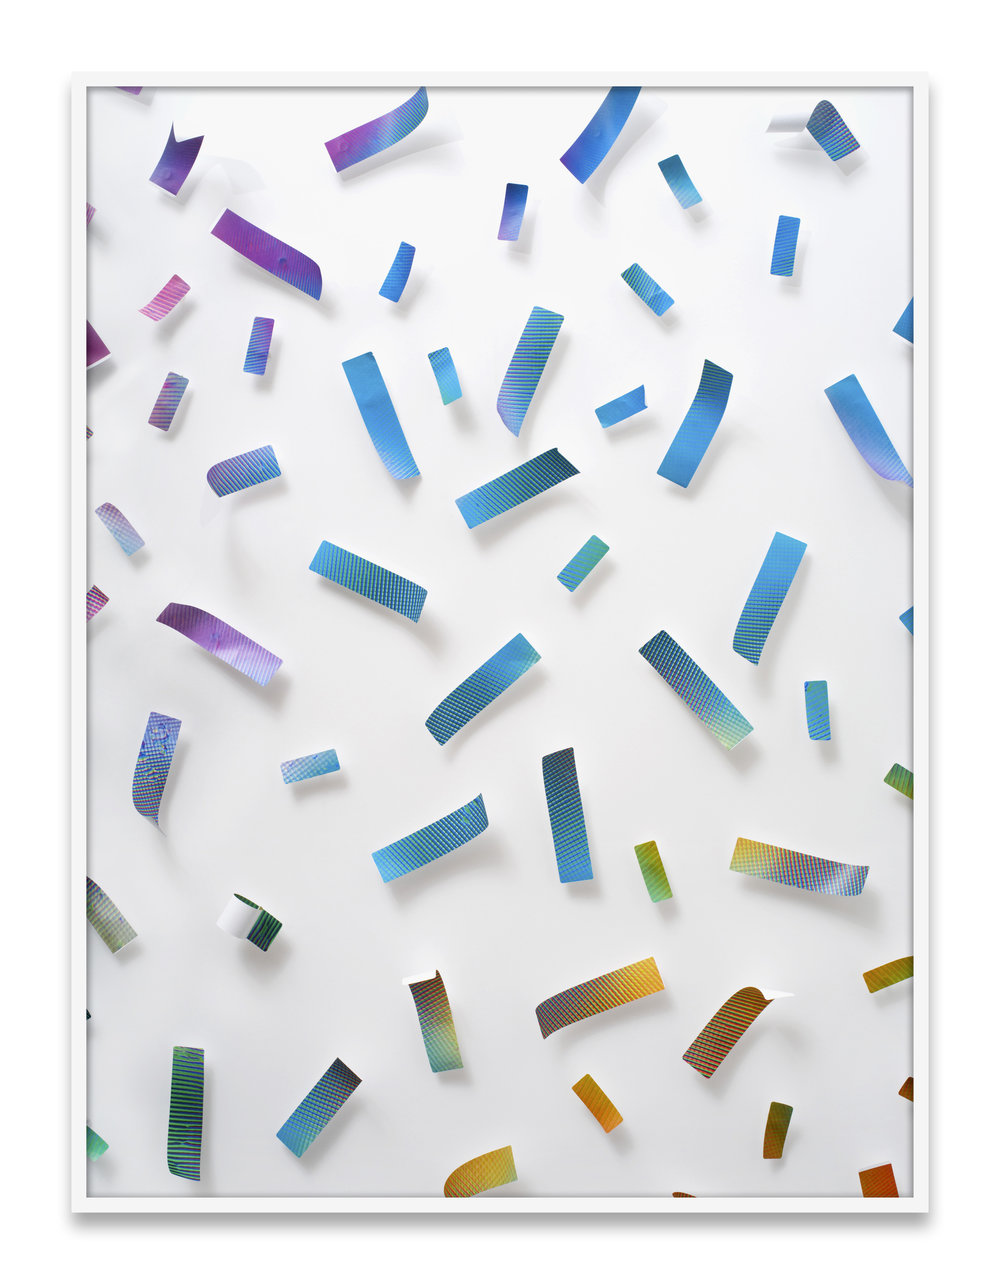 Valerie Green  labels (pinned) , 2016 Archival pigment print 58 x 42 inches